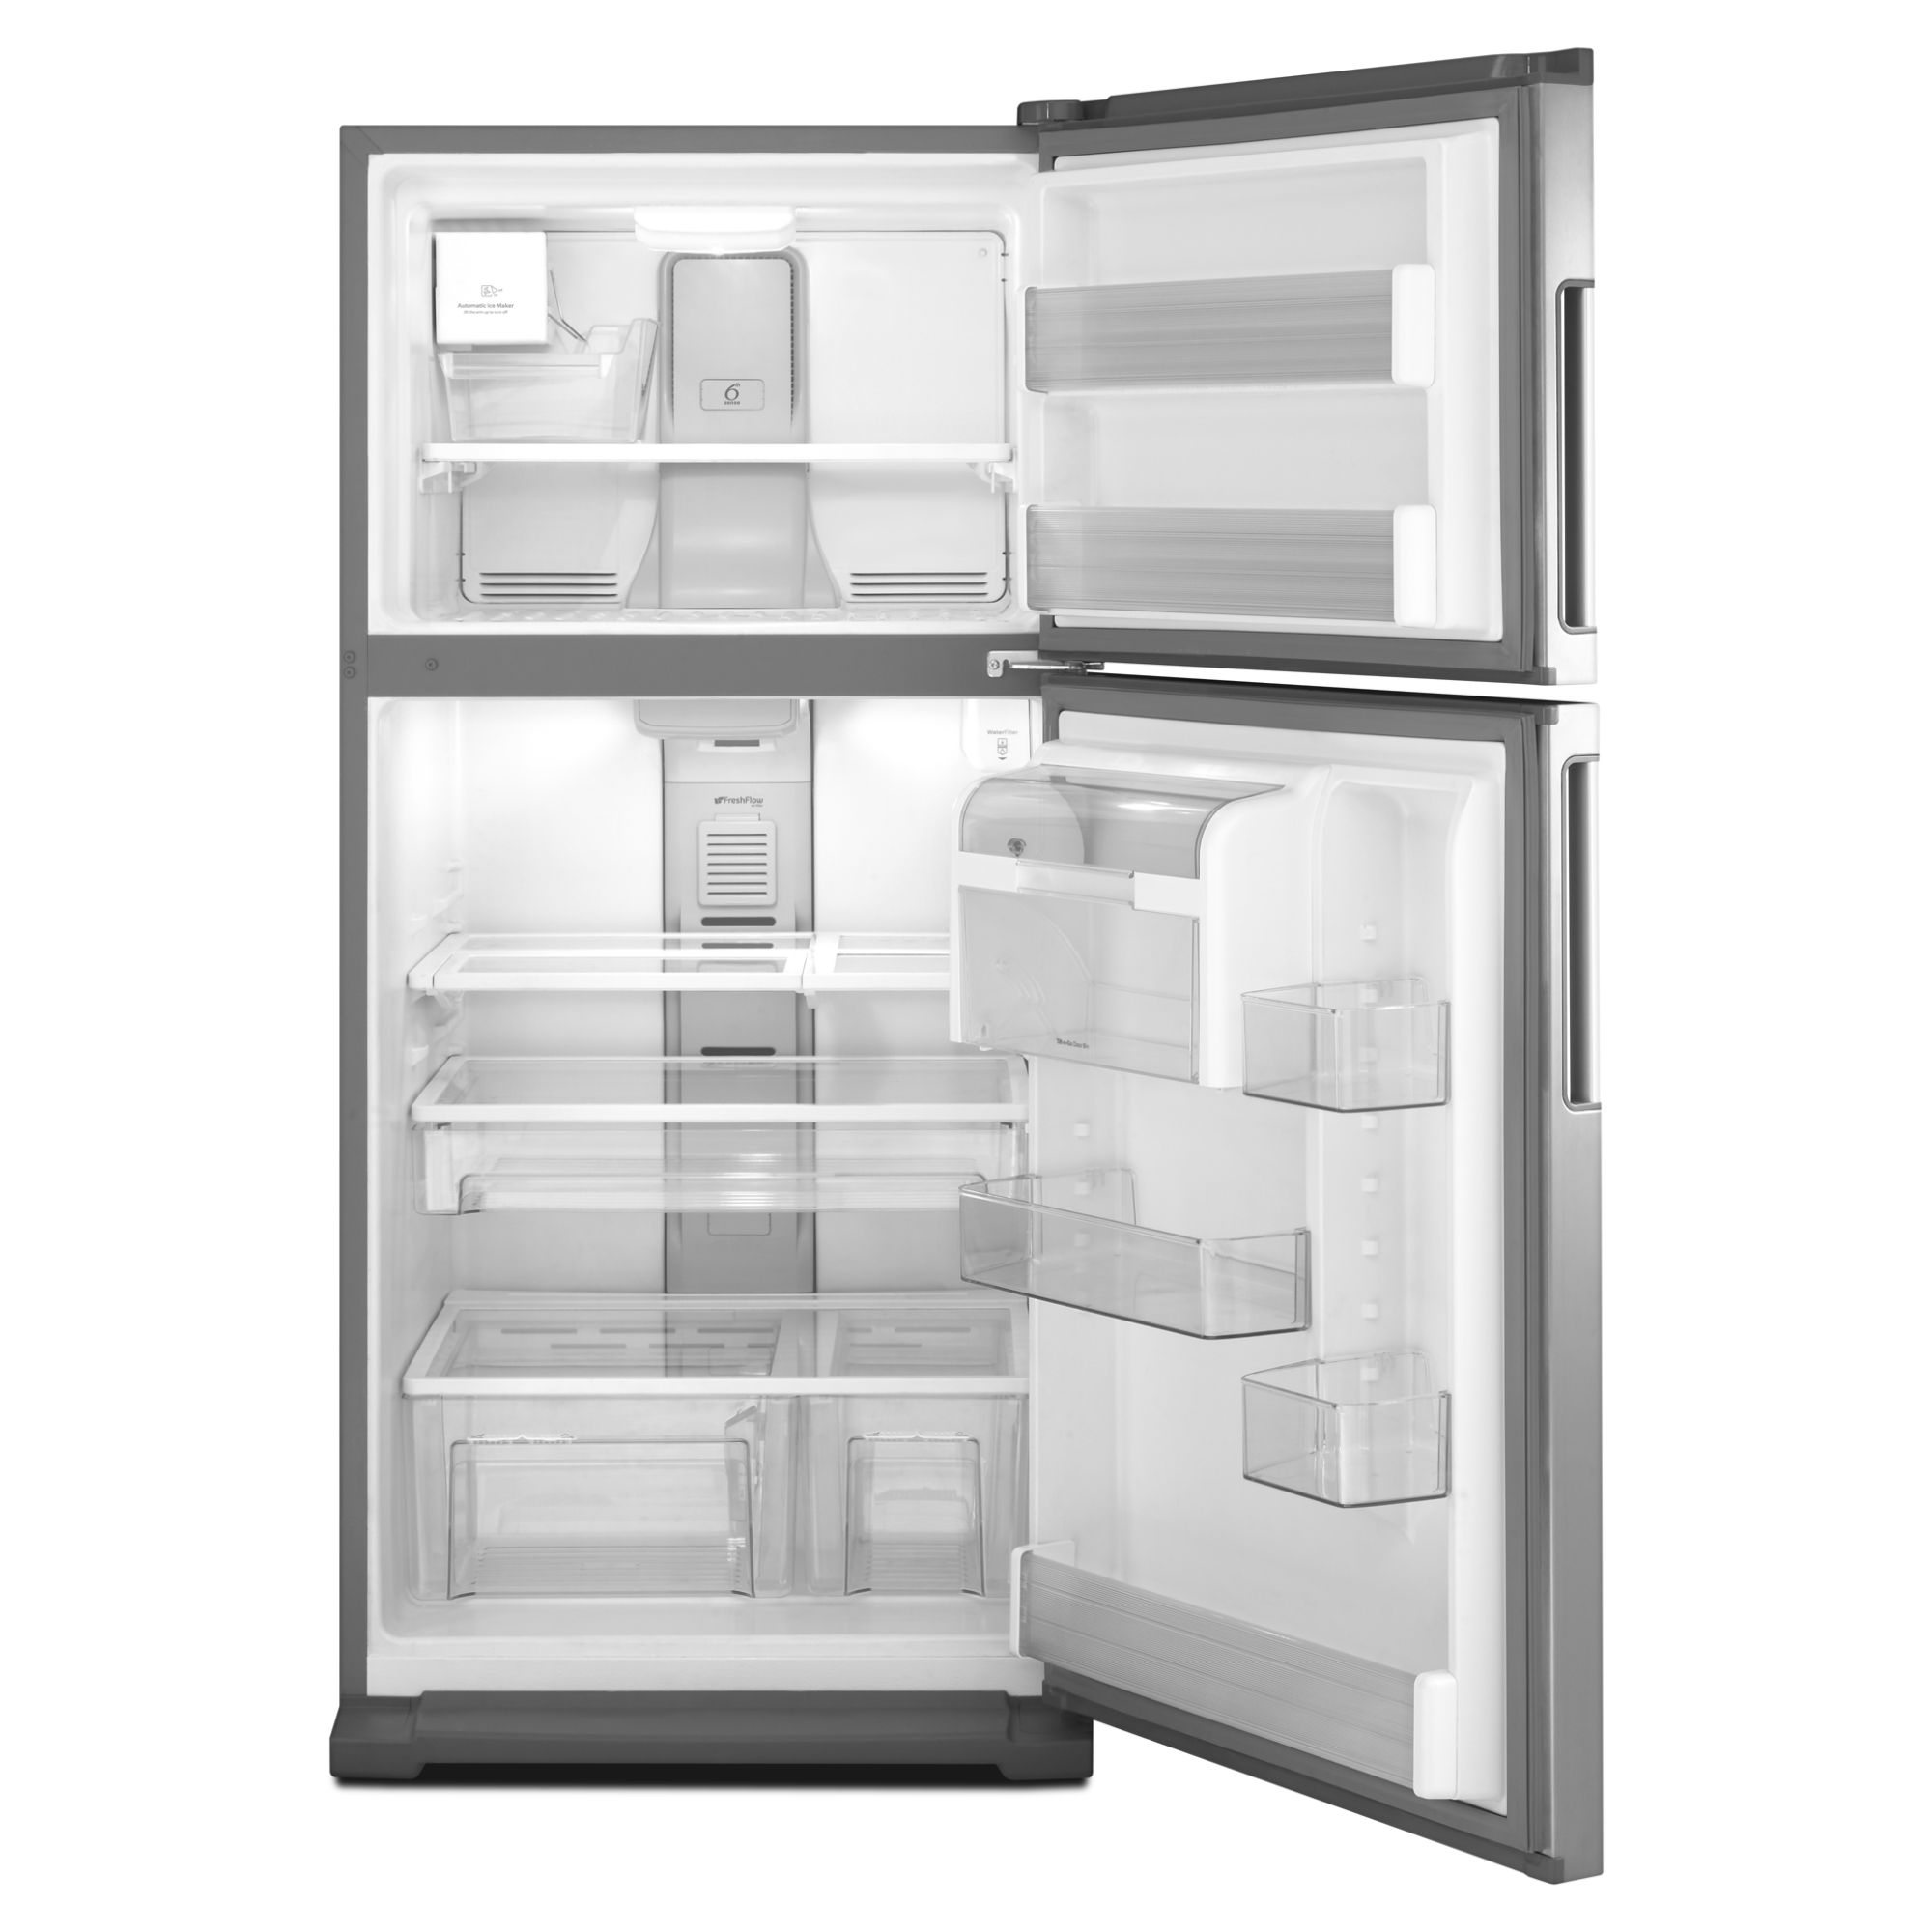 Whirlpool 21.1 cu. ft. Top-Freezer Refrigerator w/ Exterior Water Dispenser - Stainless Steel Look